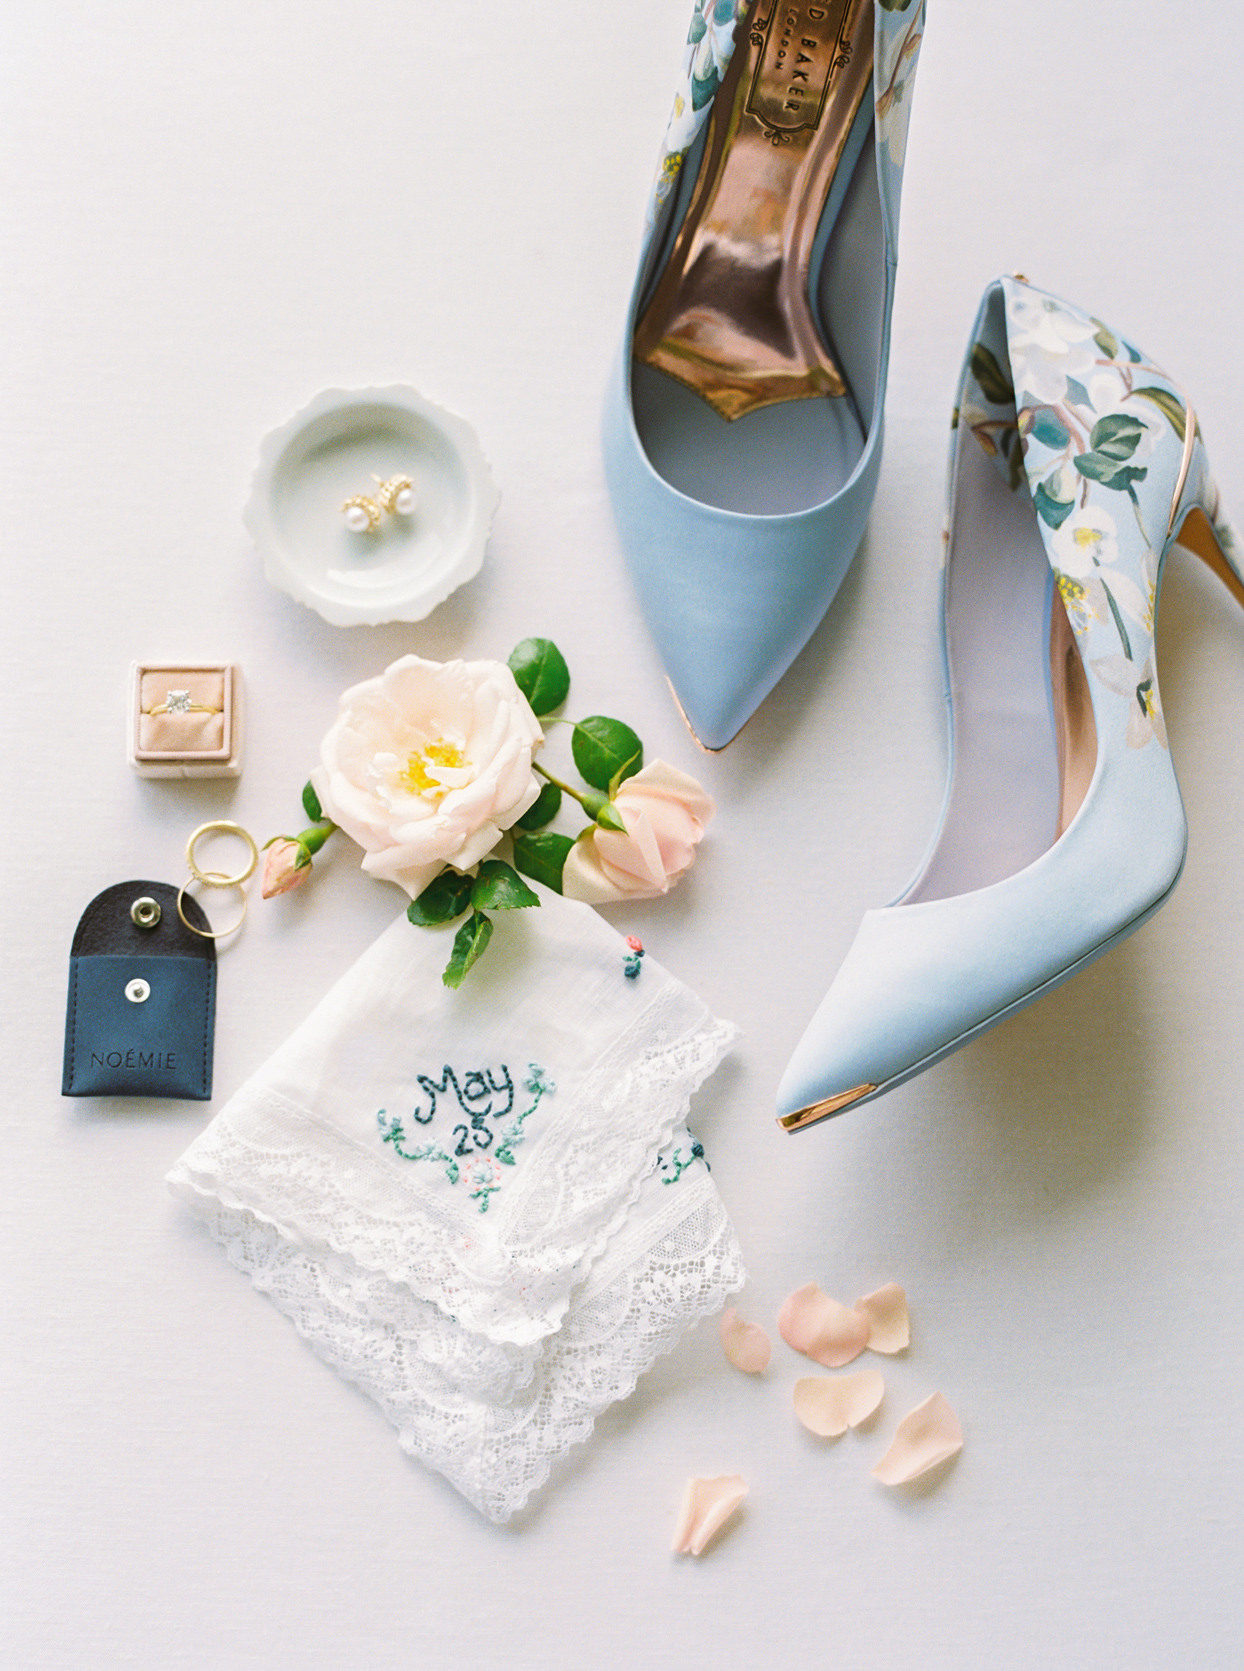 pale blue heels, gold and pearl earrings, white linen handkerchief with embroidered wedding date